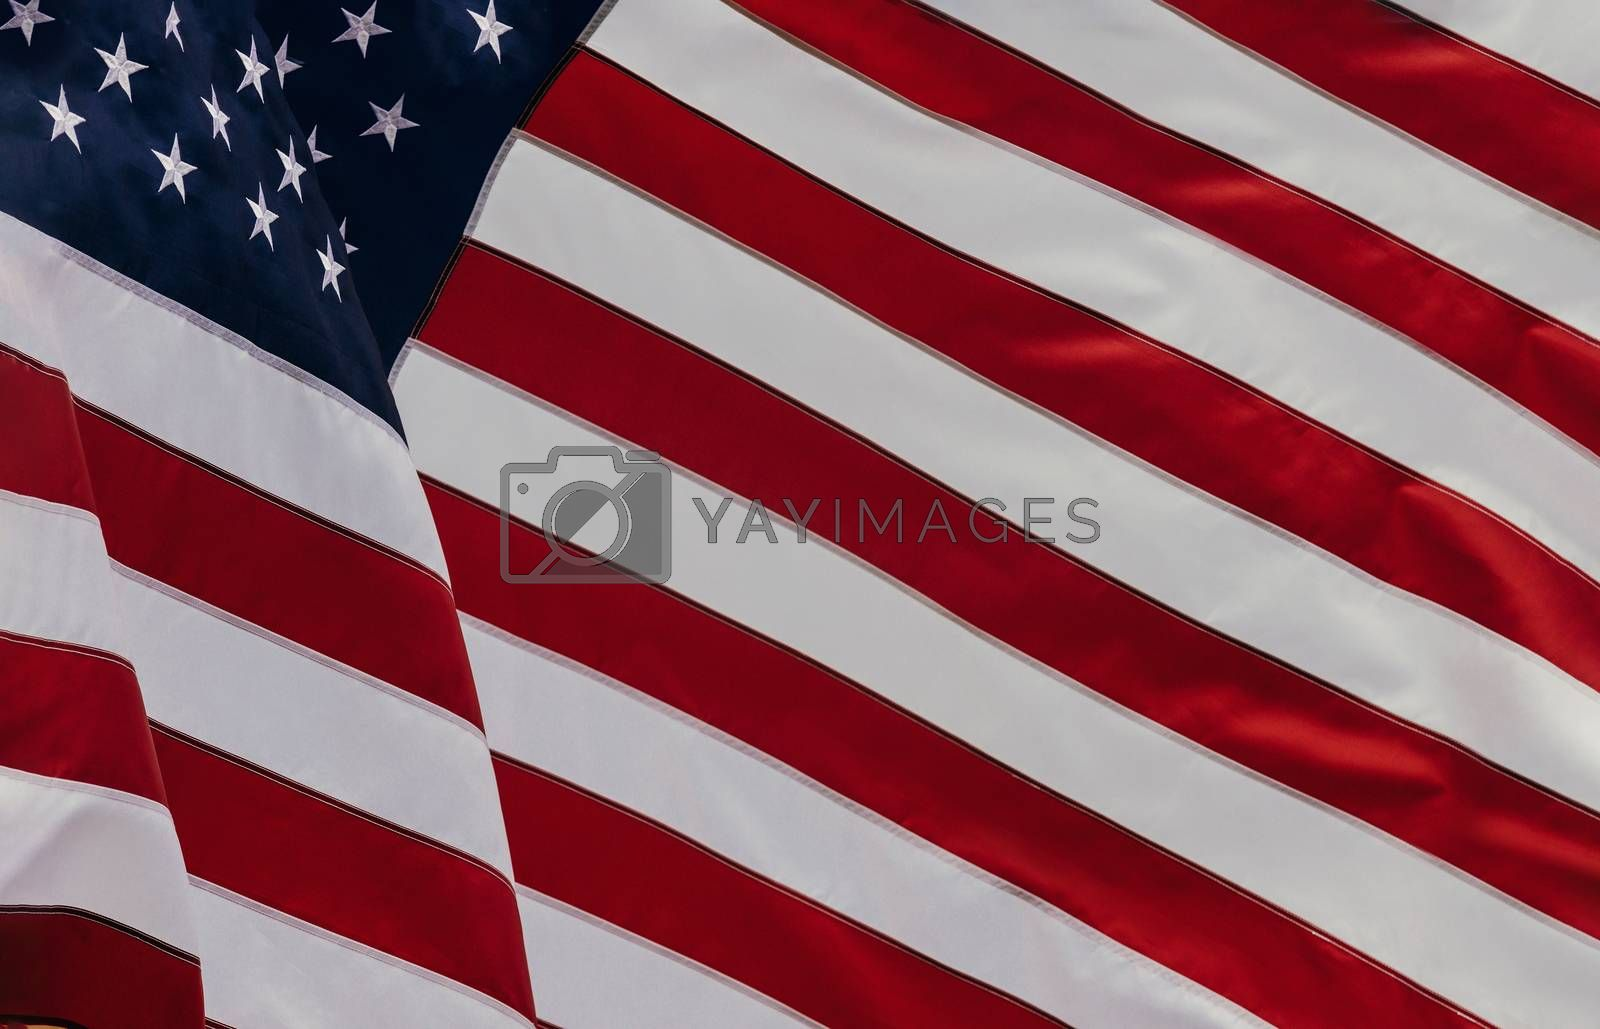 Royalty free image of Beautifully waving star and striped American flag by ungvar